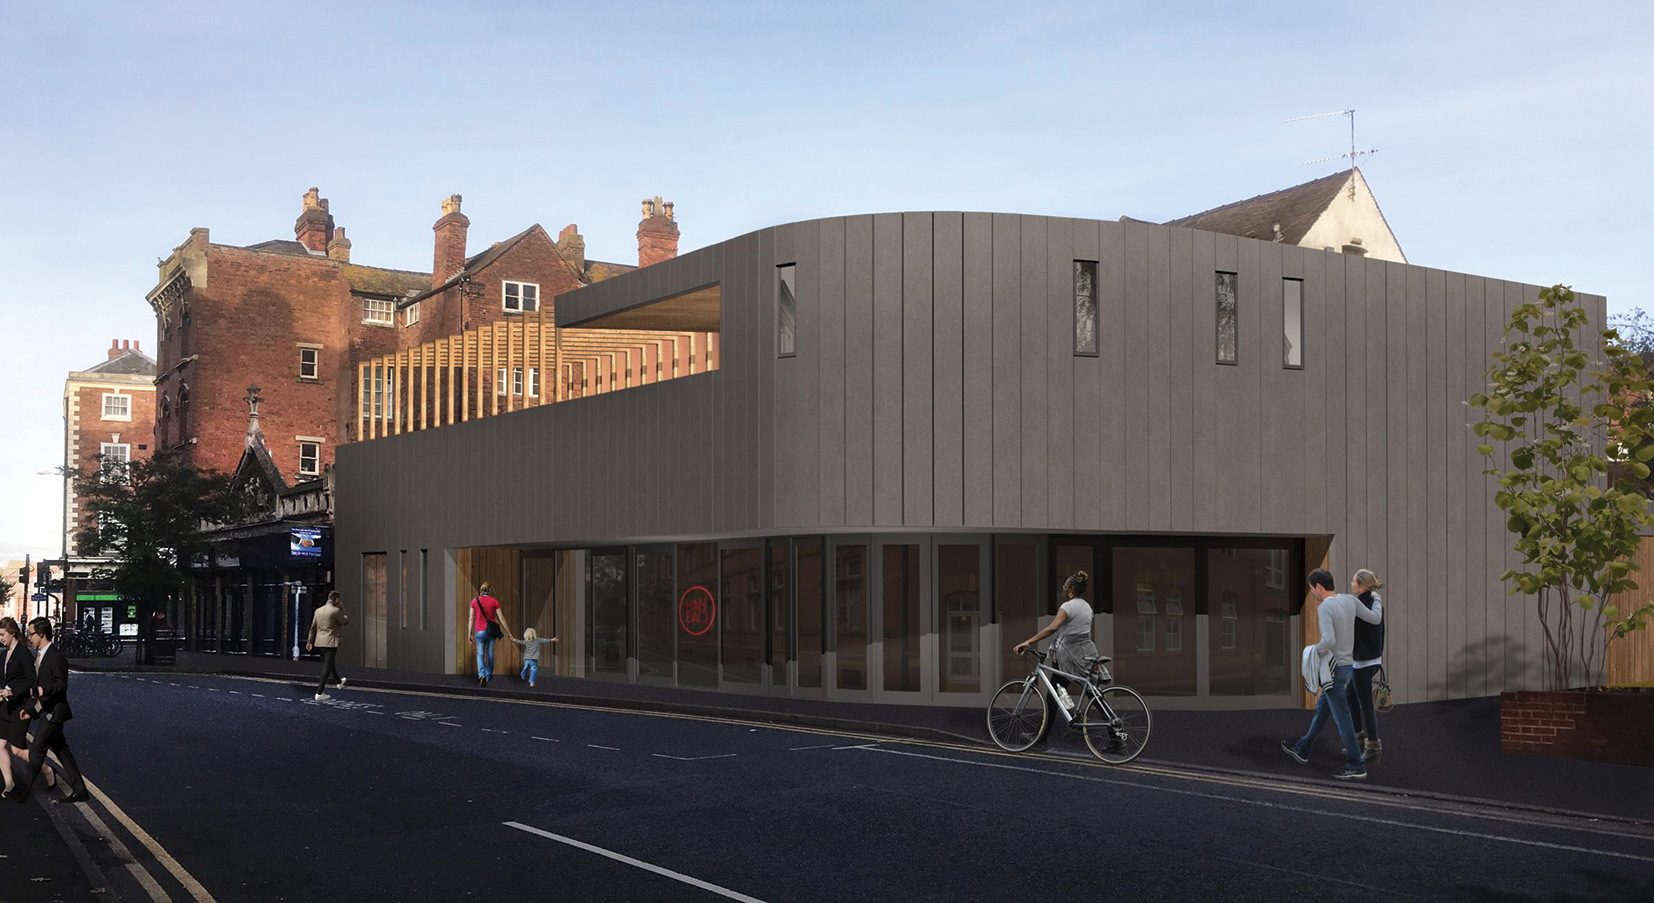 Popular burger restaurant & cocktail bar gets the green light to build a rooftop bar in Worcester city centre